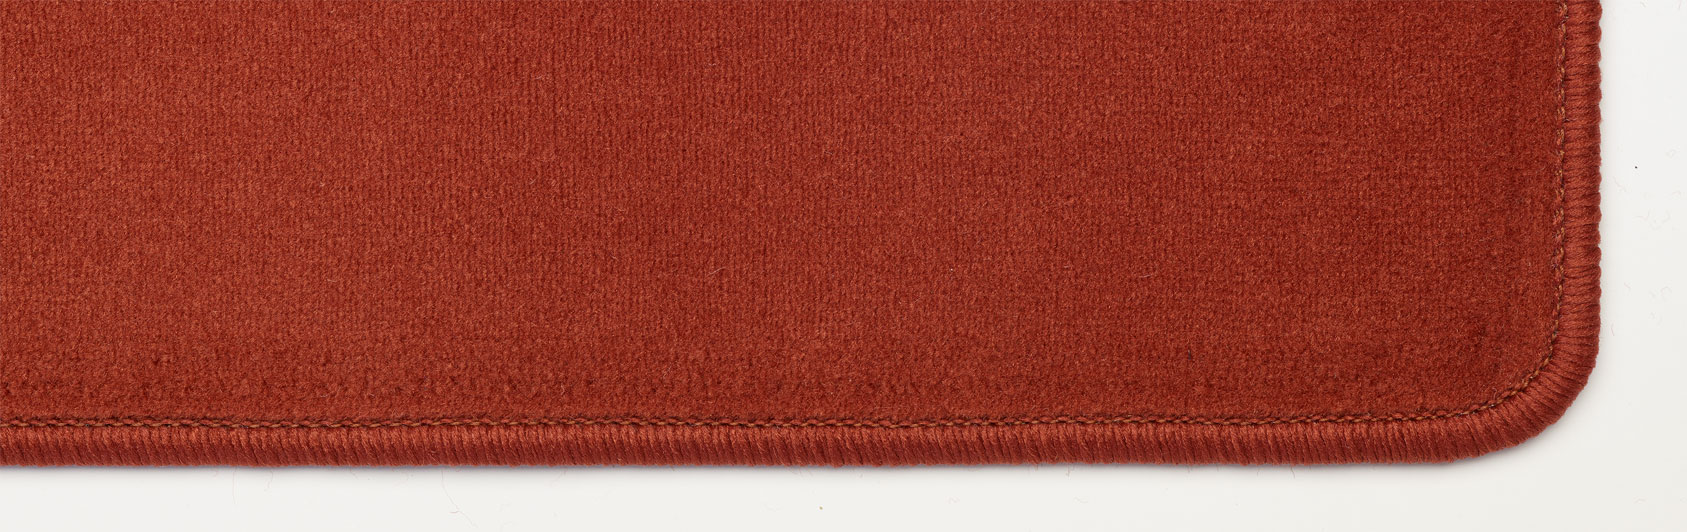 church carpet velvet color code 131 color mahagoni